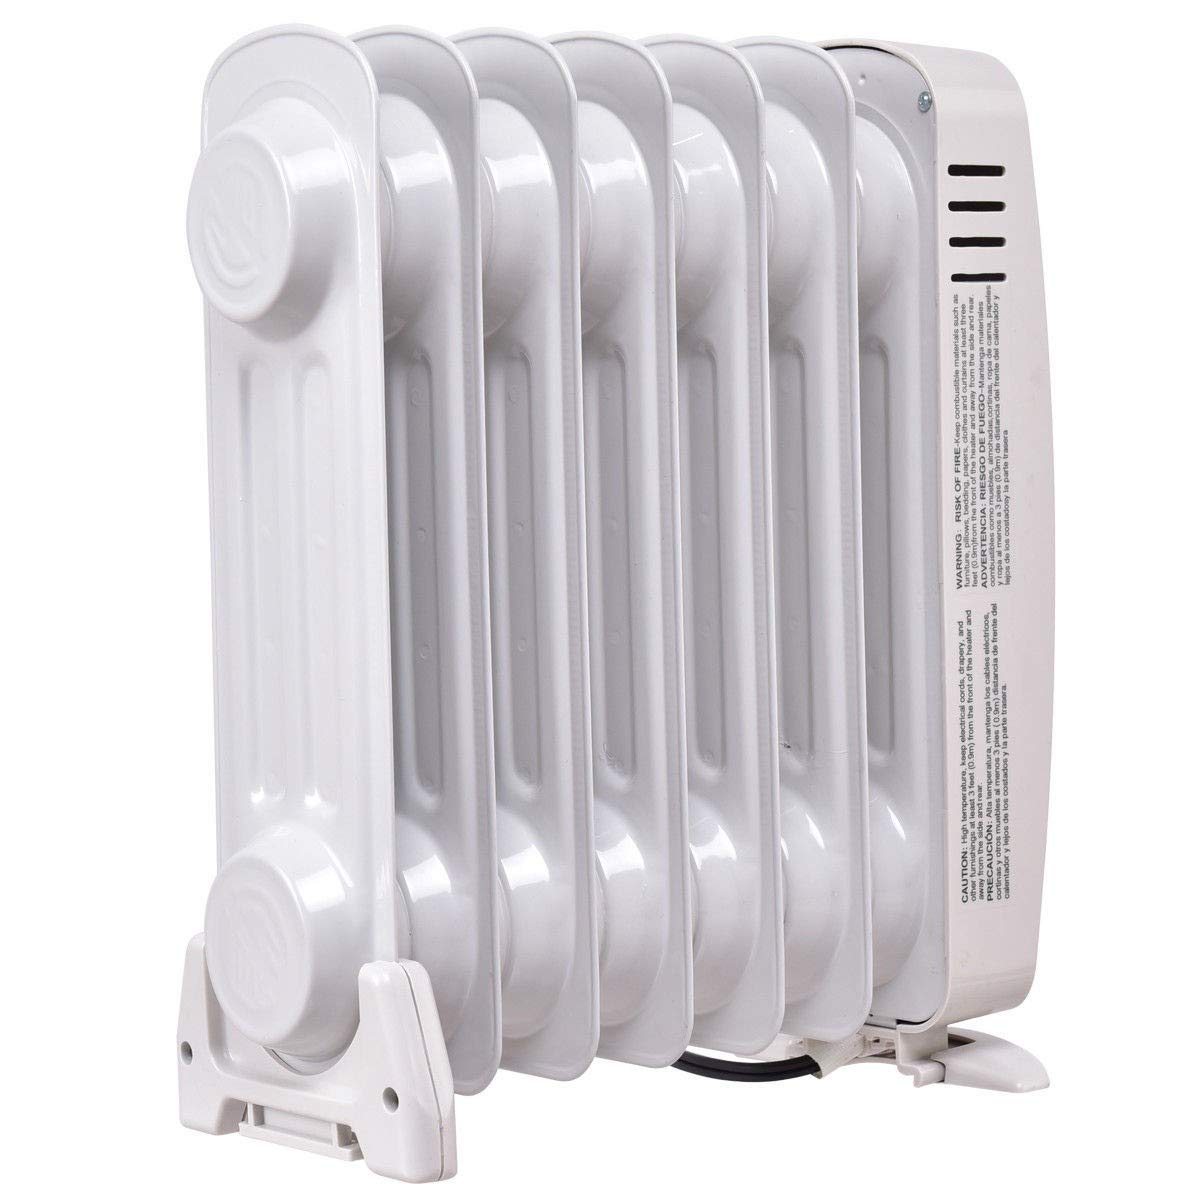 Amazon.com: Radiator Heater Portable Mini Oil Filled Electric 700 W Space Thermostat Silent Operation MD Group: Home & Kitchen